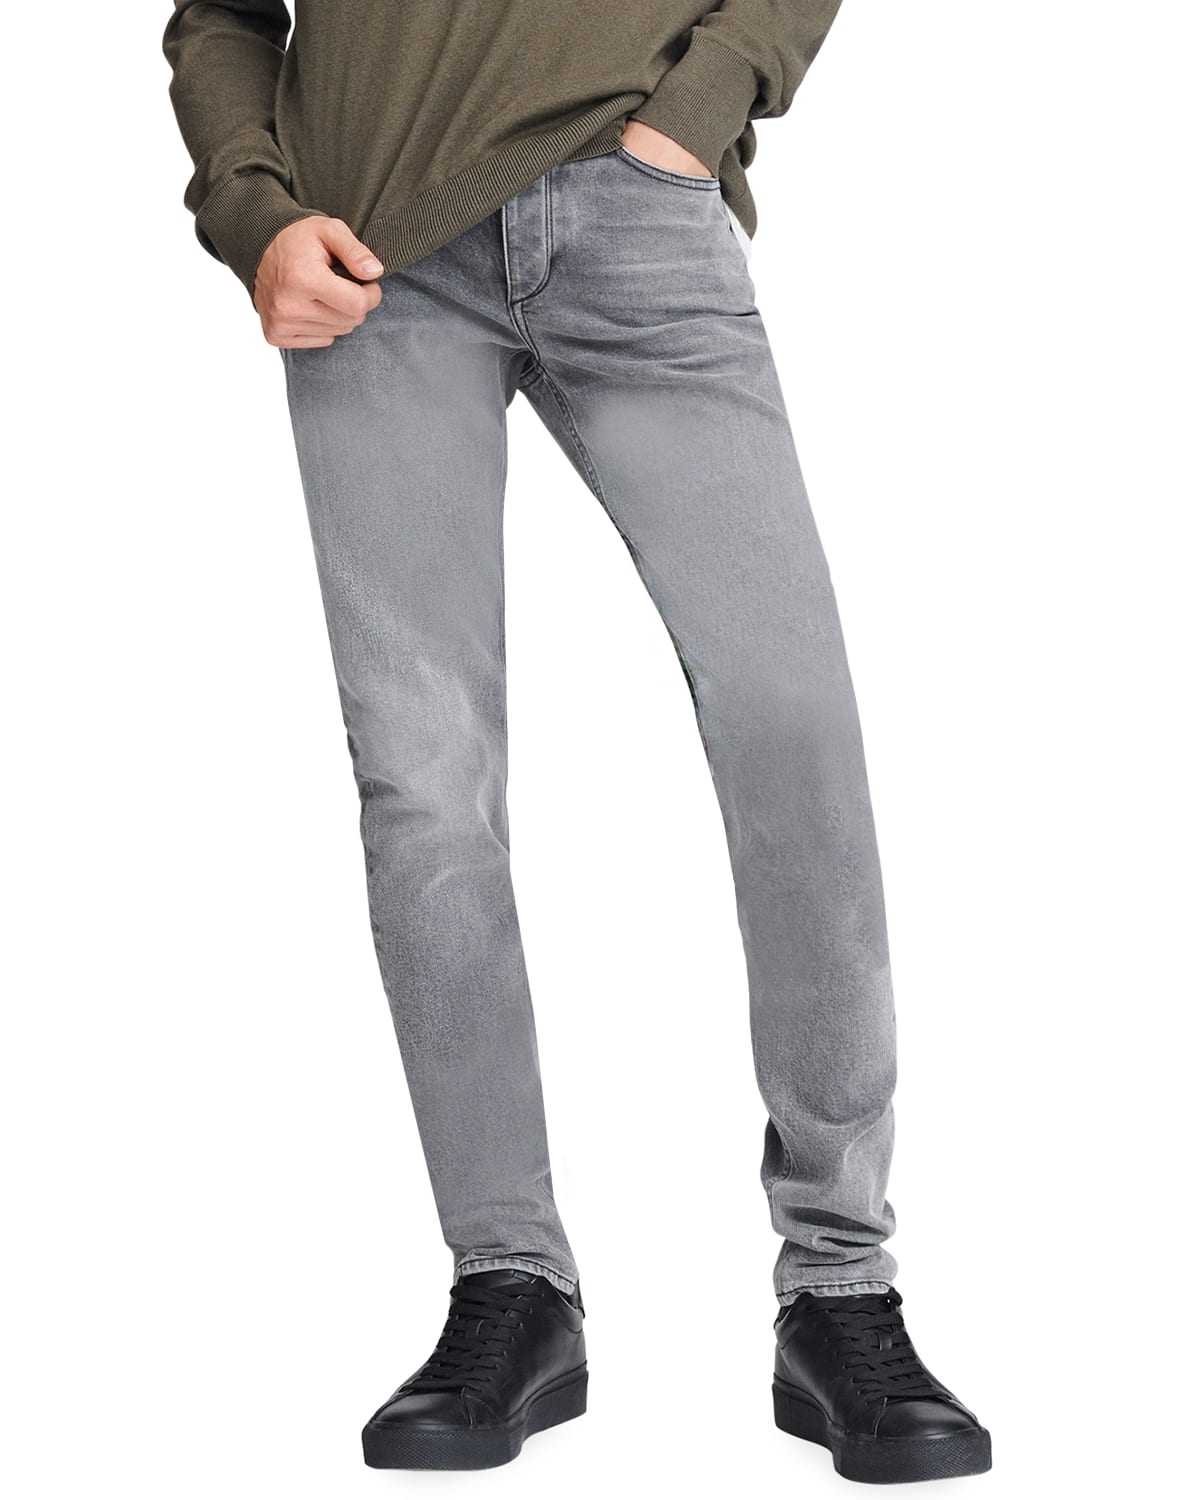 Men's Fit 2 Mid-Rise Relaxed Slim-Fit Jeans